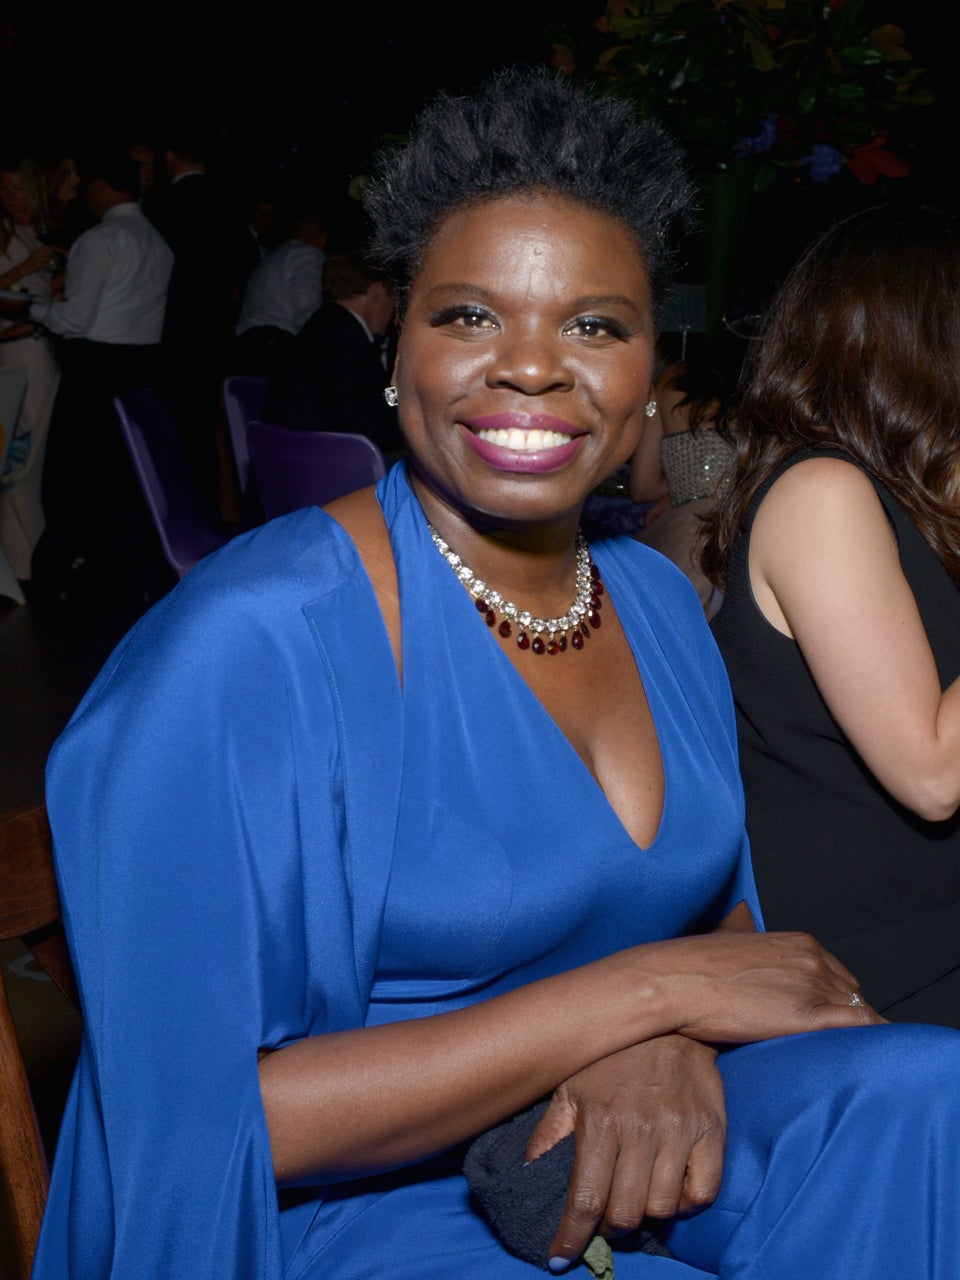 Leslie Jones Slams Publisher for Book Deal with Conservative Activist Who Subjected Her to Online Abuse